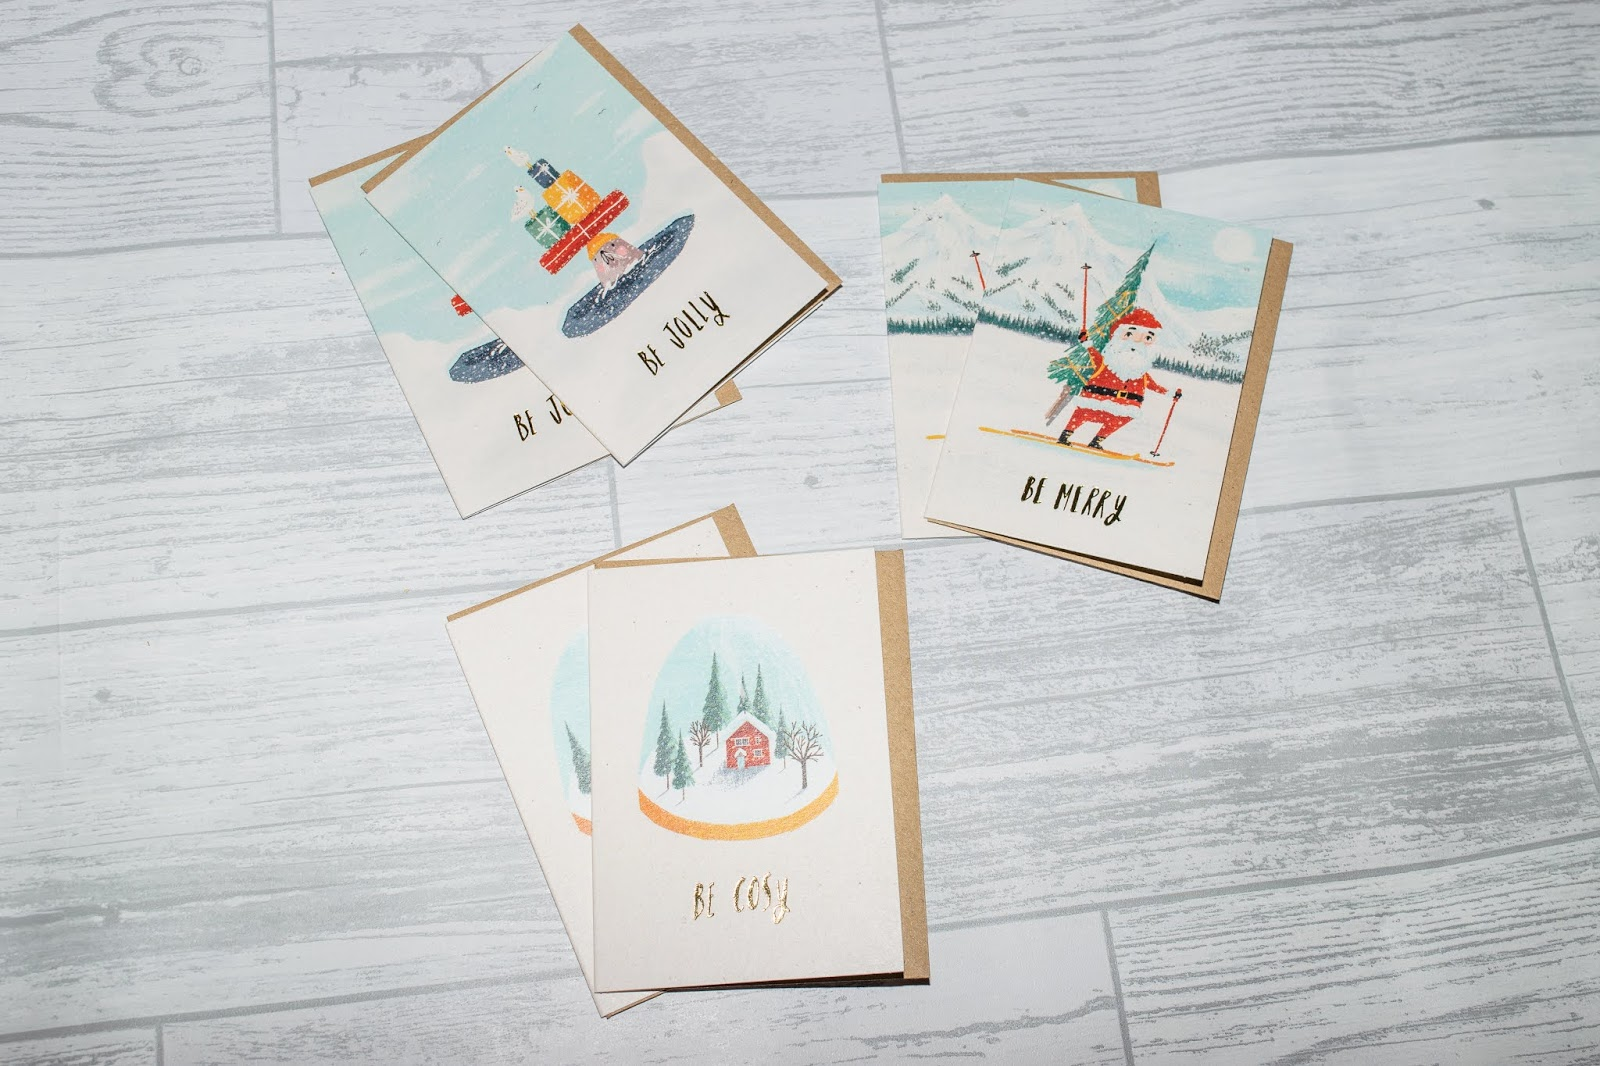 Three Christmas Card designs showing Santa on skis, a seal with presents on his head and snow covered house in a snow globe.